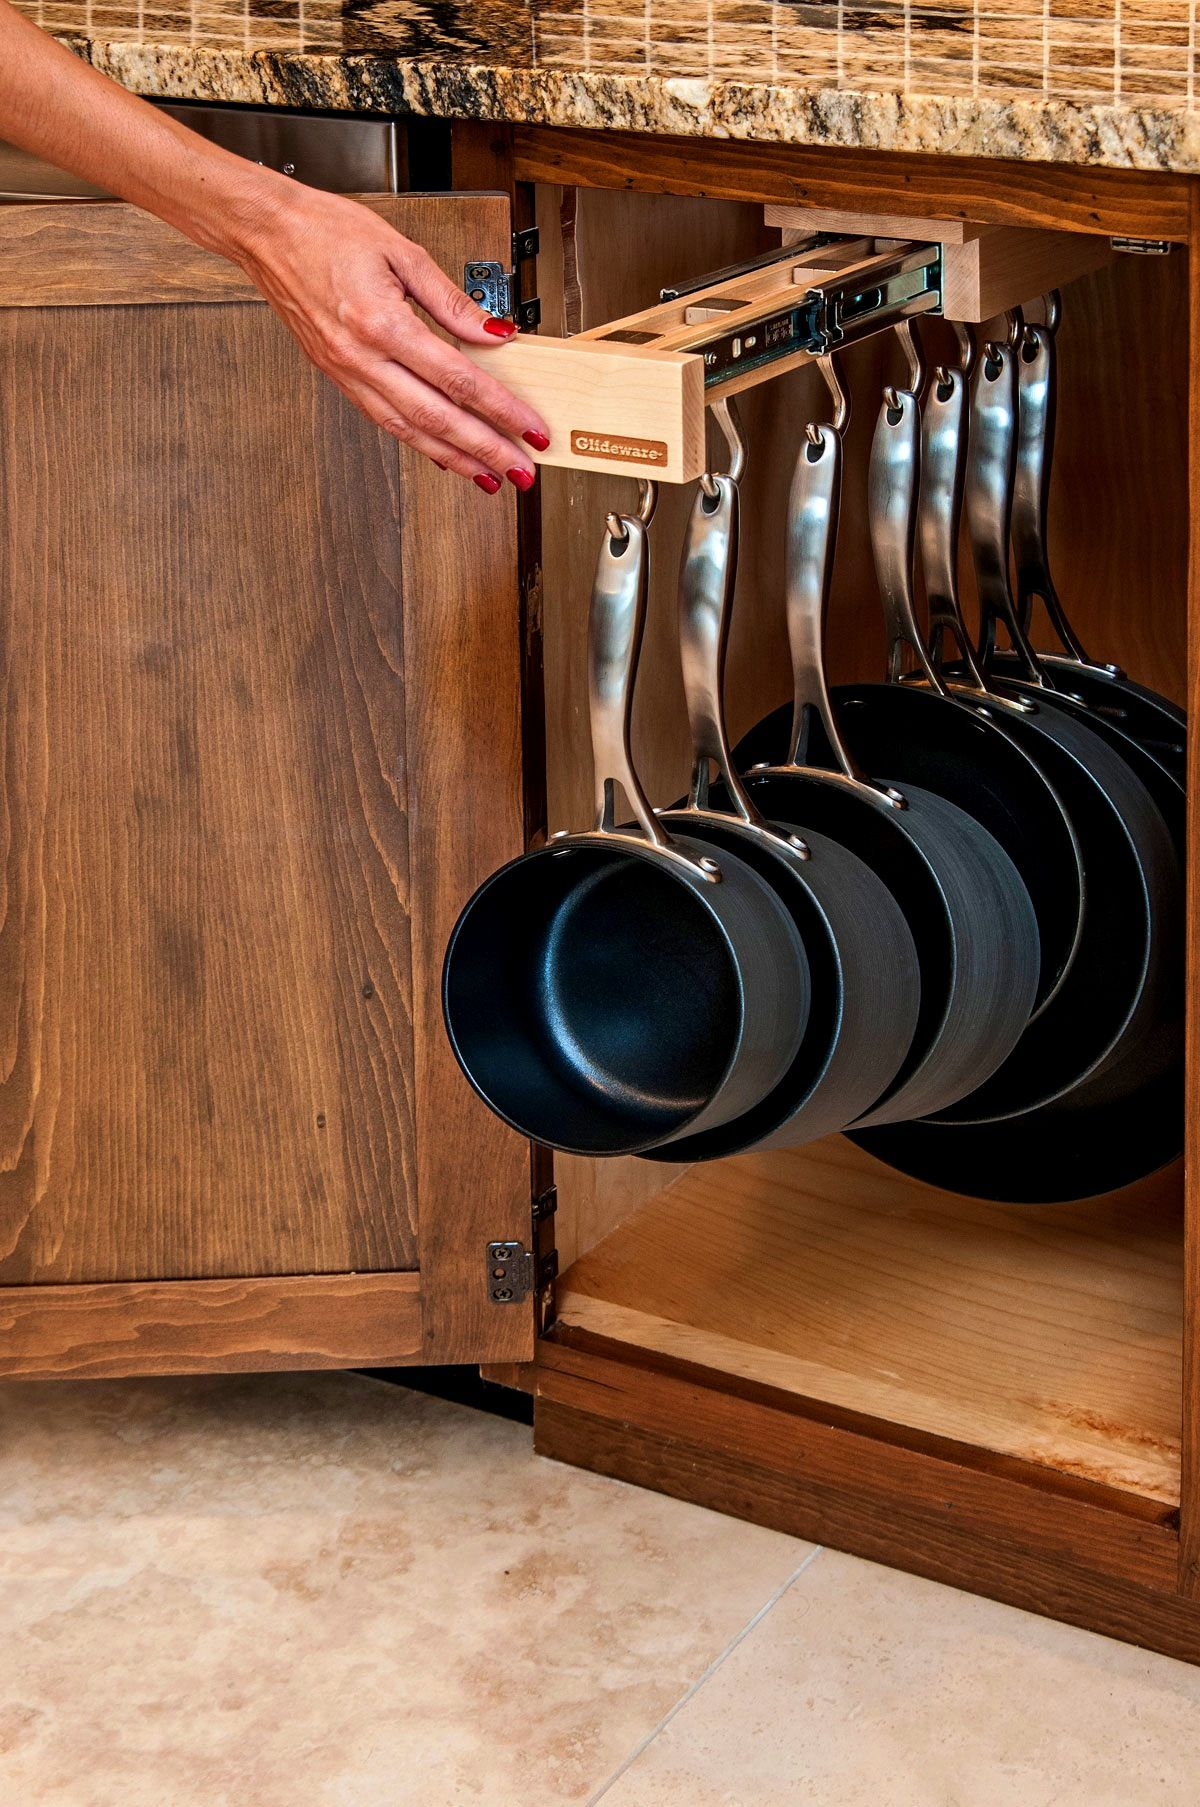 Pot and Pan Rack reachable